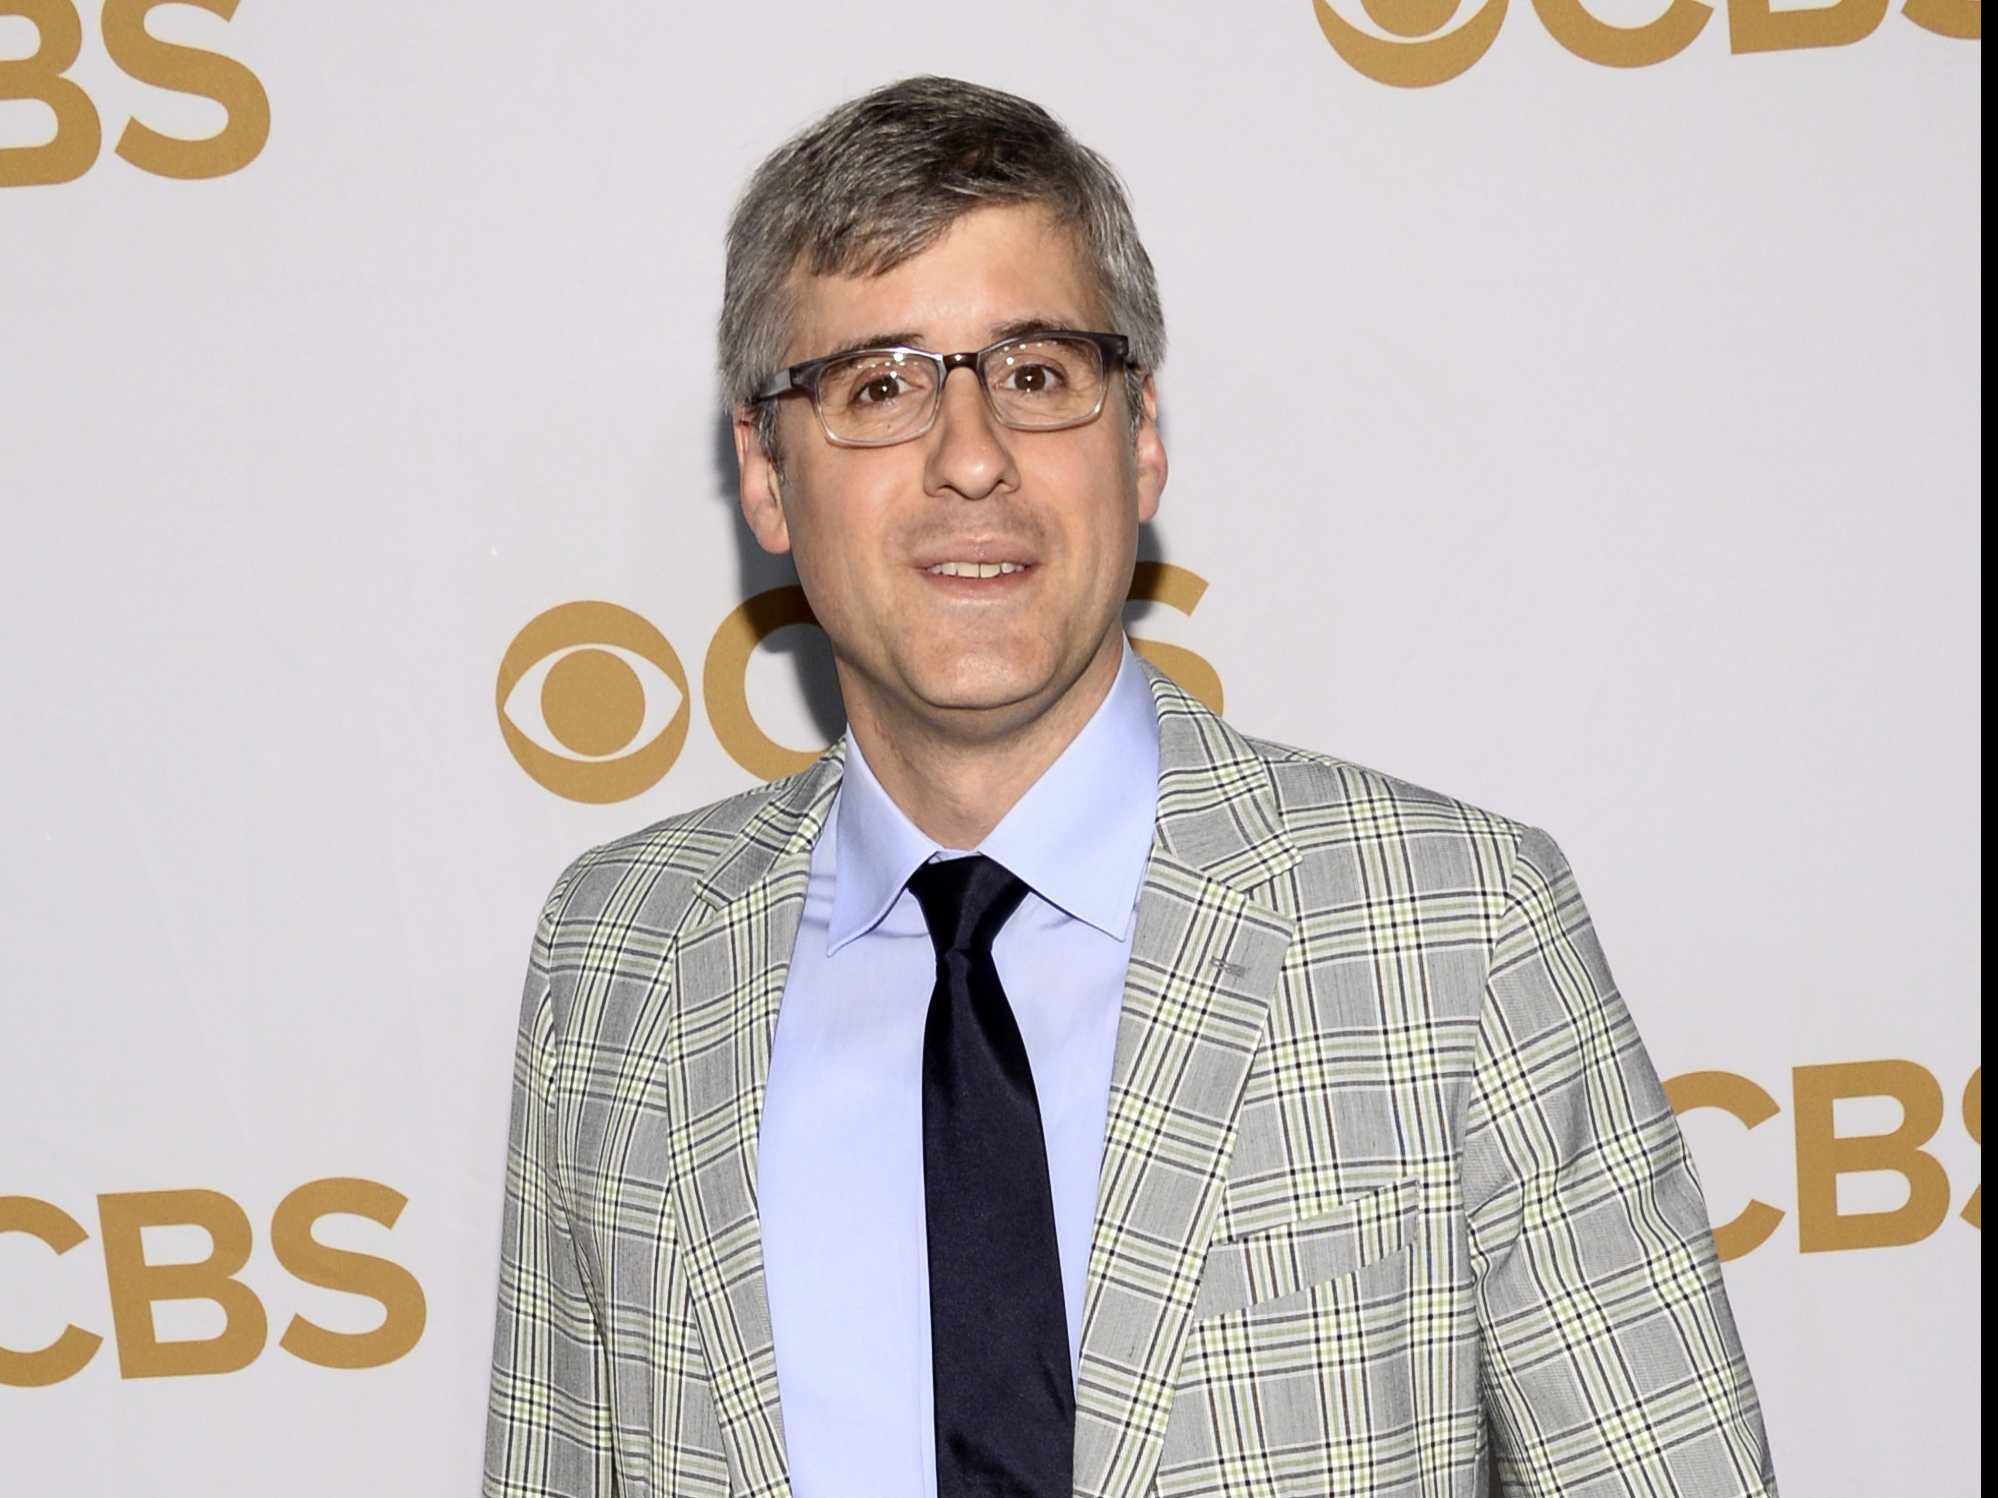 CBS' Mo Rocca to Begin Podcast Series on 'Mobituaries'